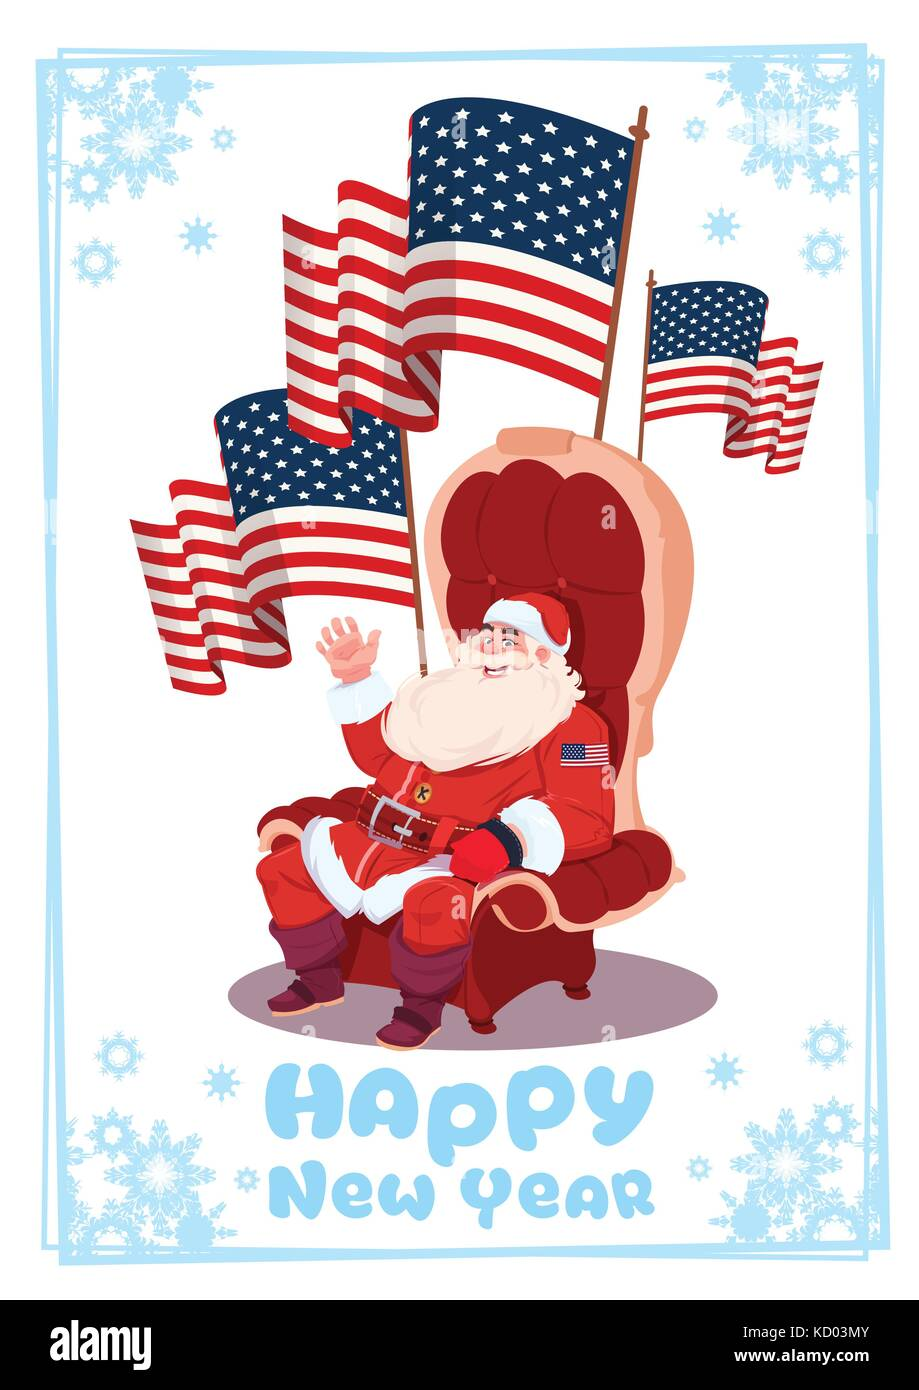 merry christmas and happy new year greeting card with santa claus sitting hold usa flag winter